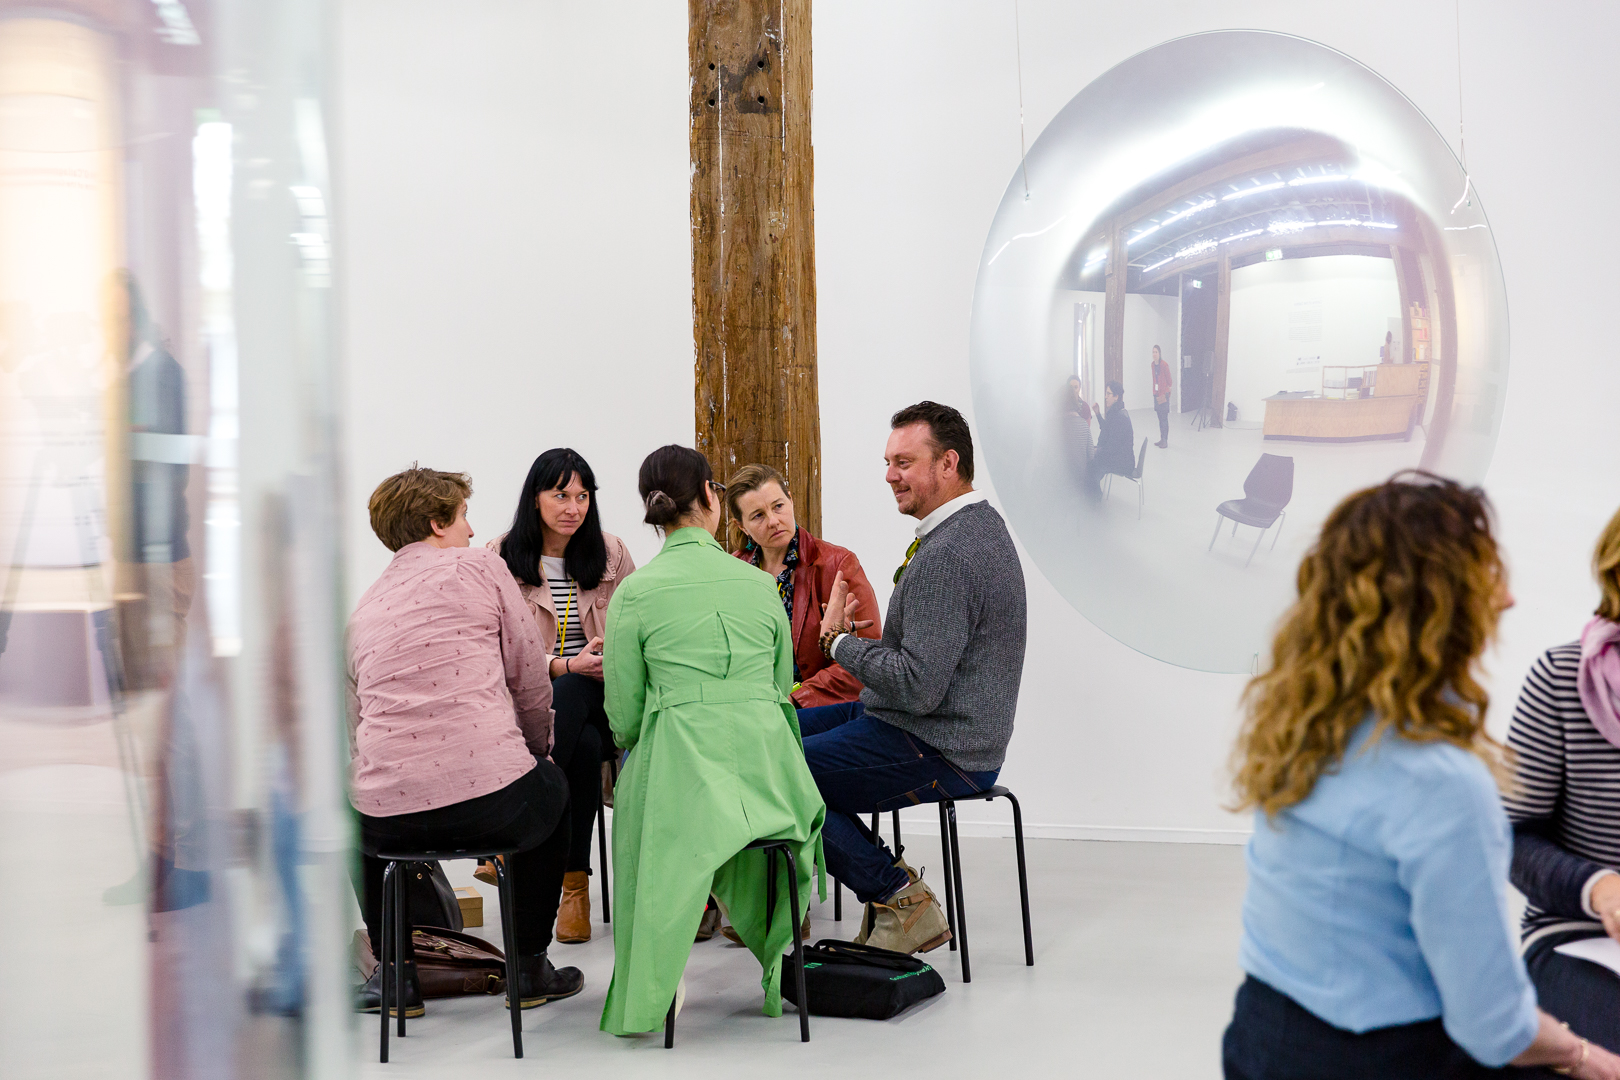 Cultural Mediation in Practice workshop featuring Mel O'Callaghan's exhibition Centre of the Centre. Photograph by Document Photography